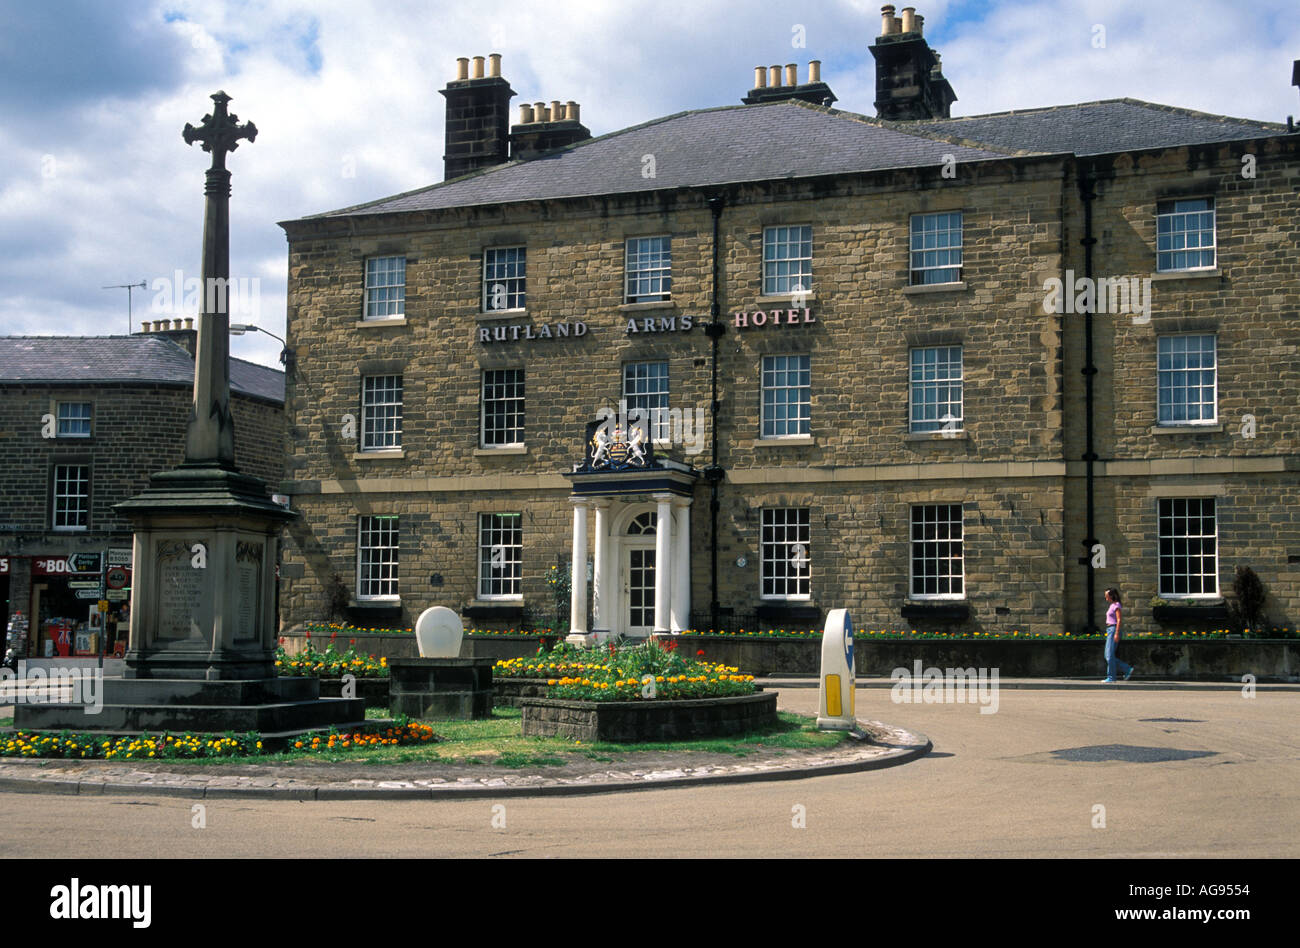 Rutland Arms Hotel Bakewell Peak District Derbyshire England